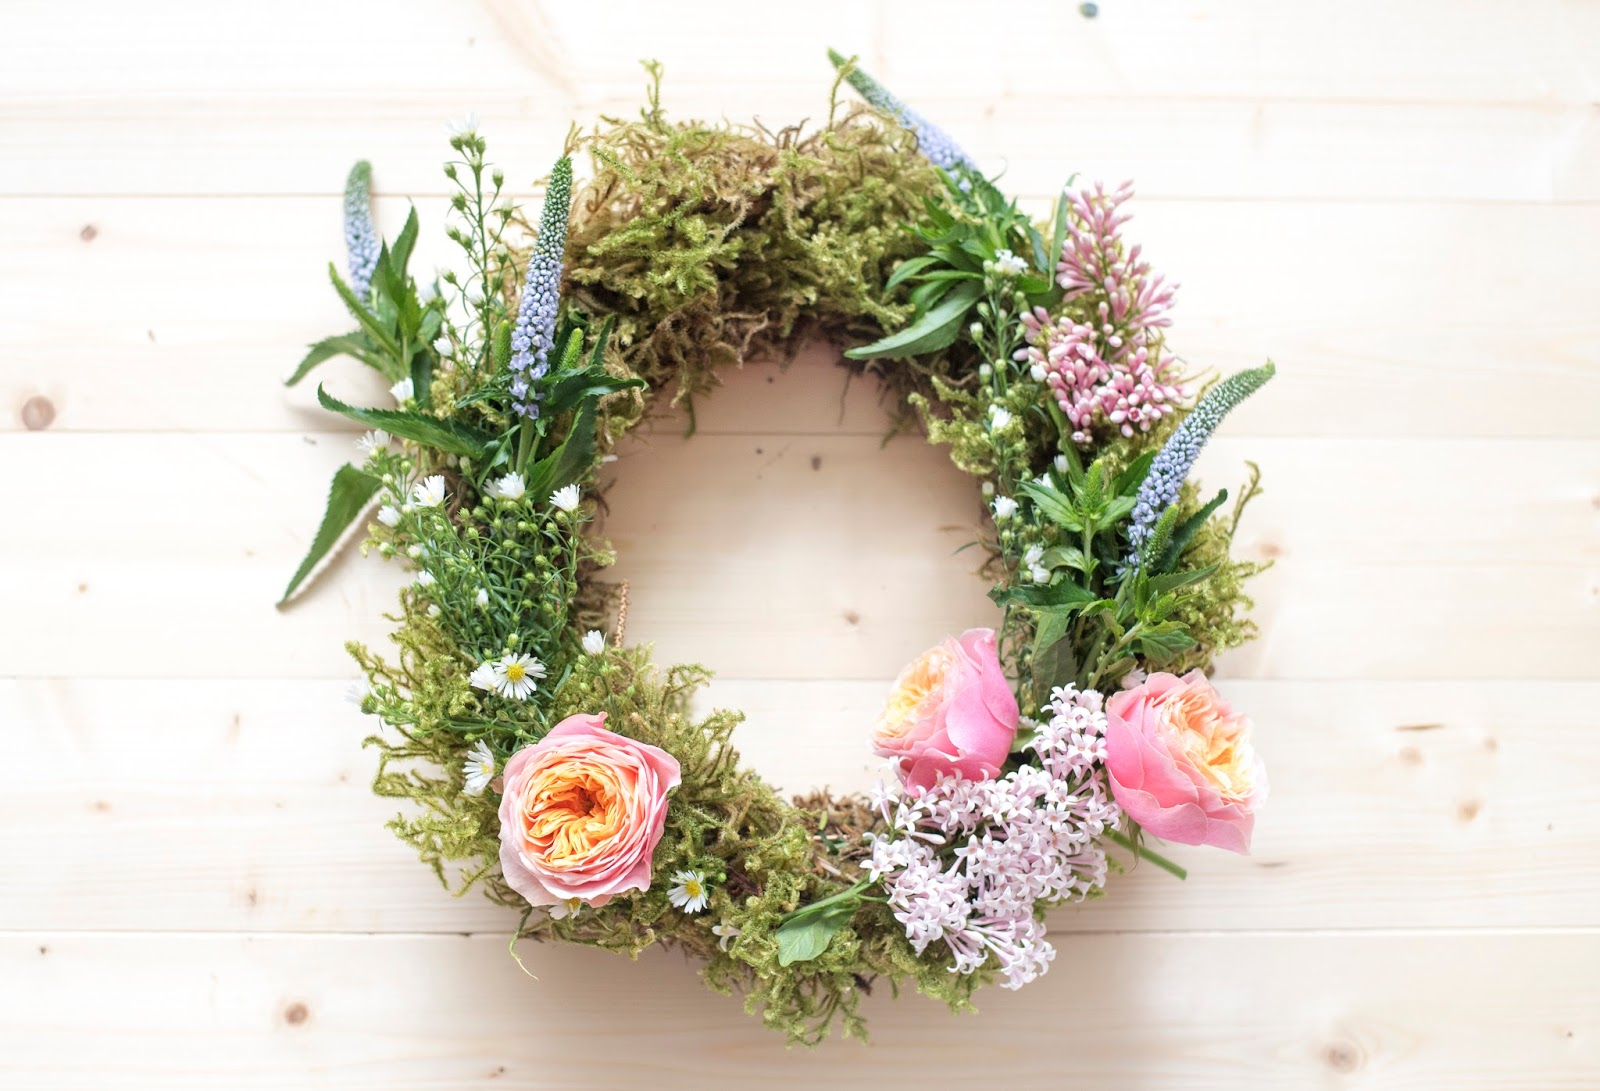 SPRINGTIME FLOWER WREATH DIY TUTORIAL